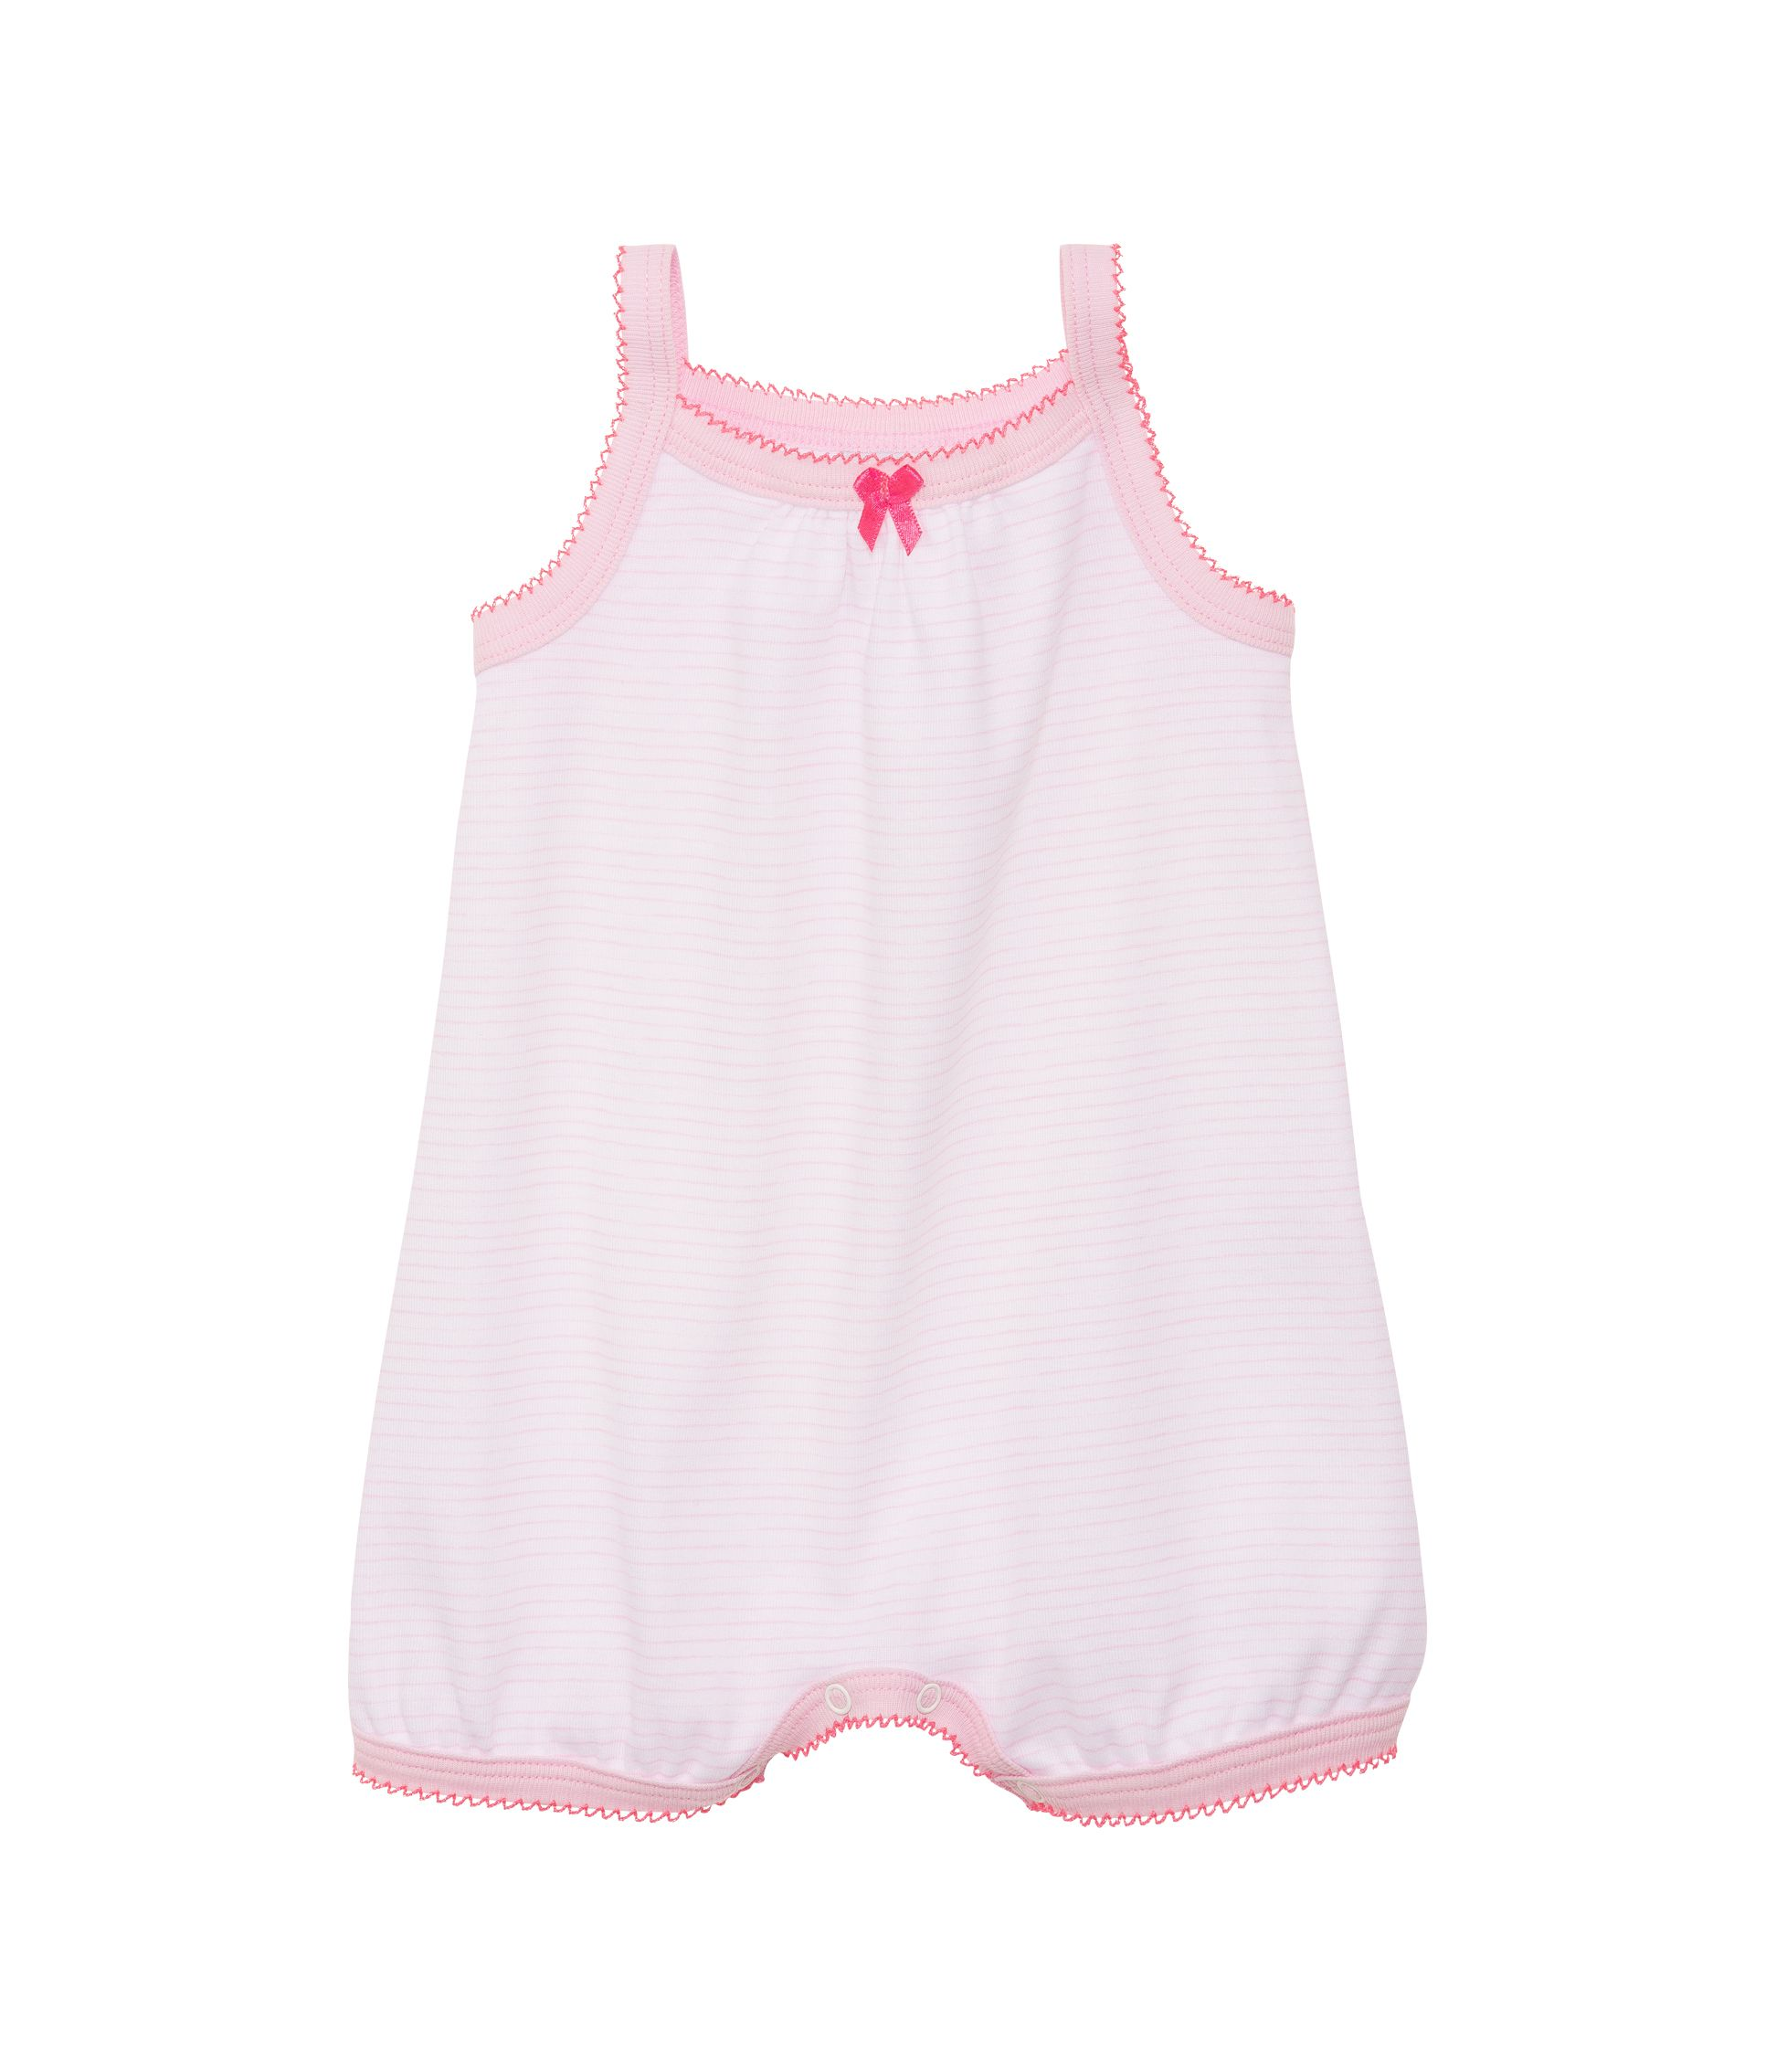 Baby girls bloomer all-in-one